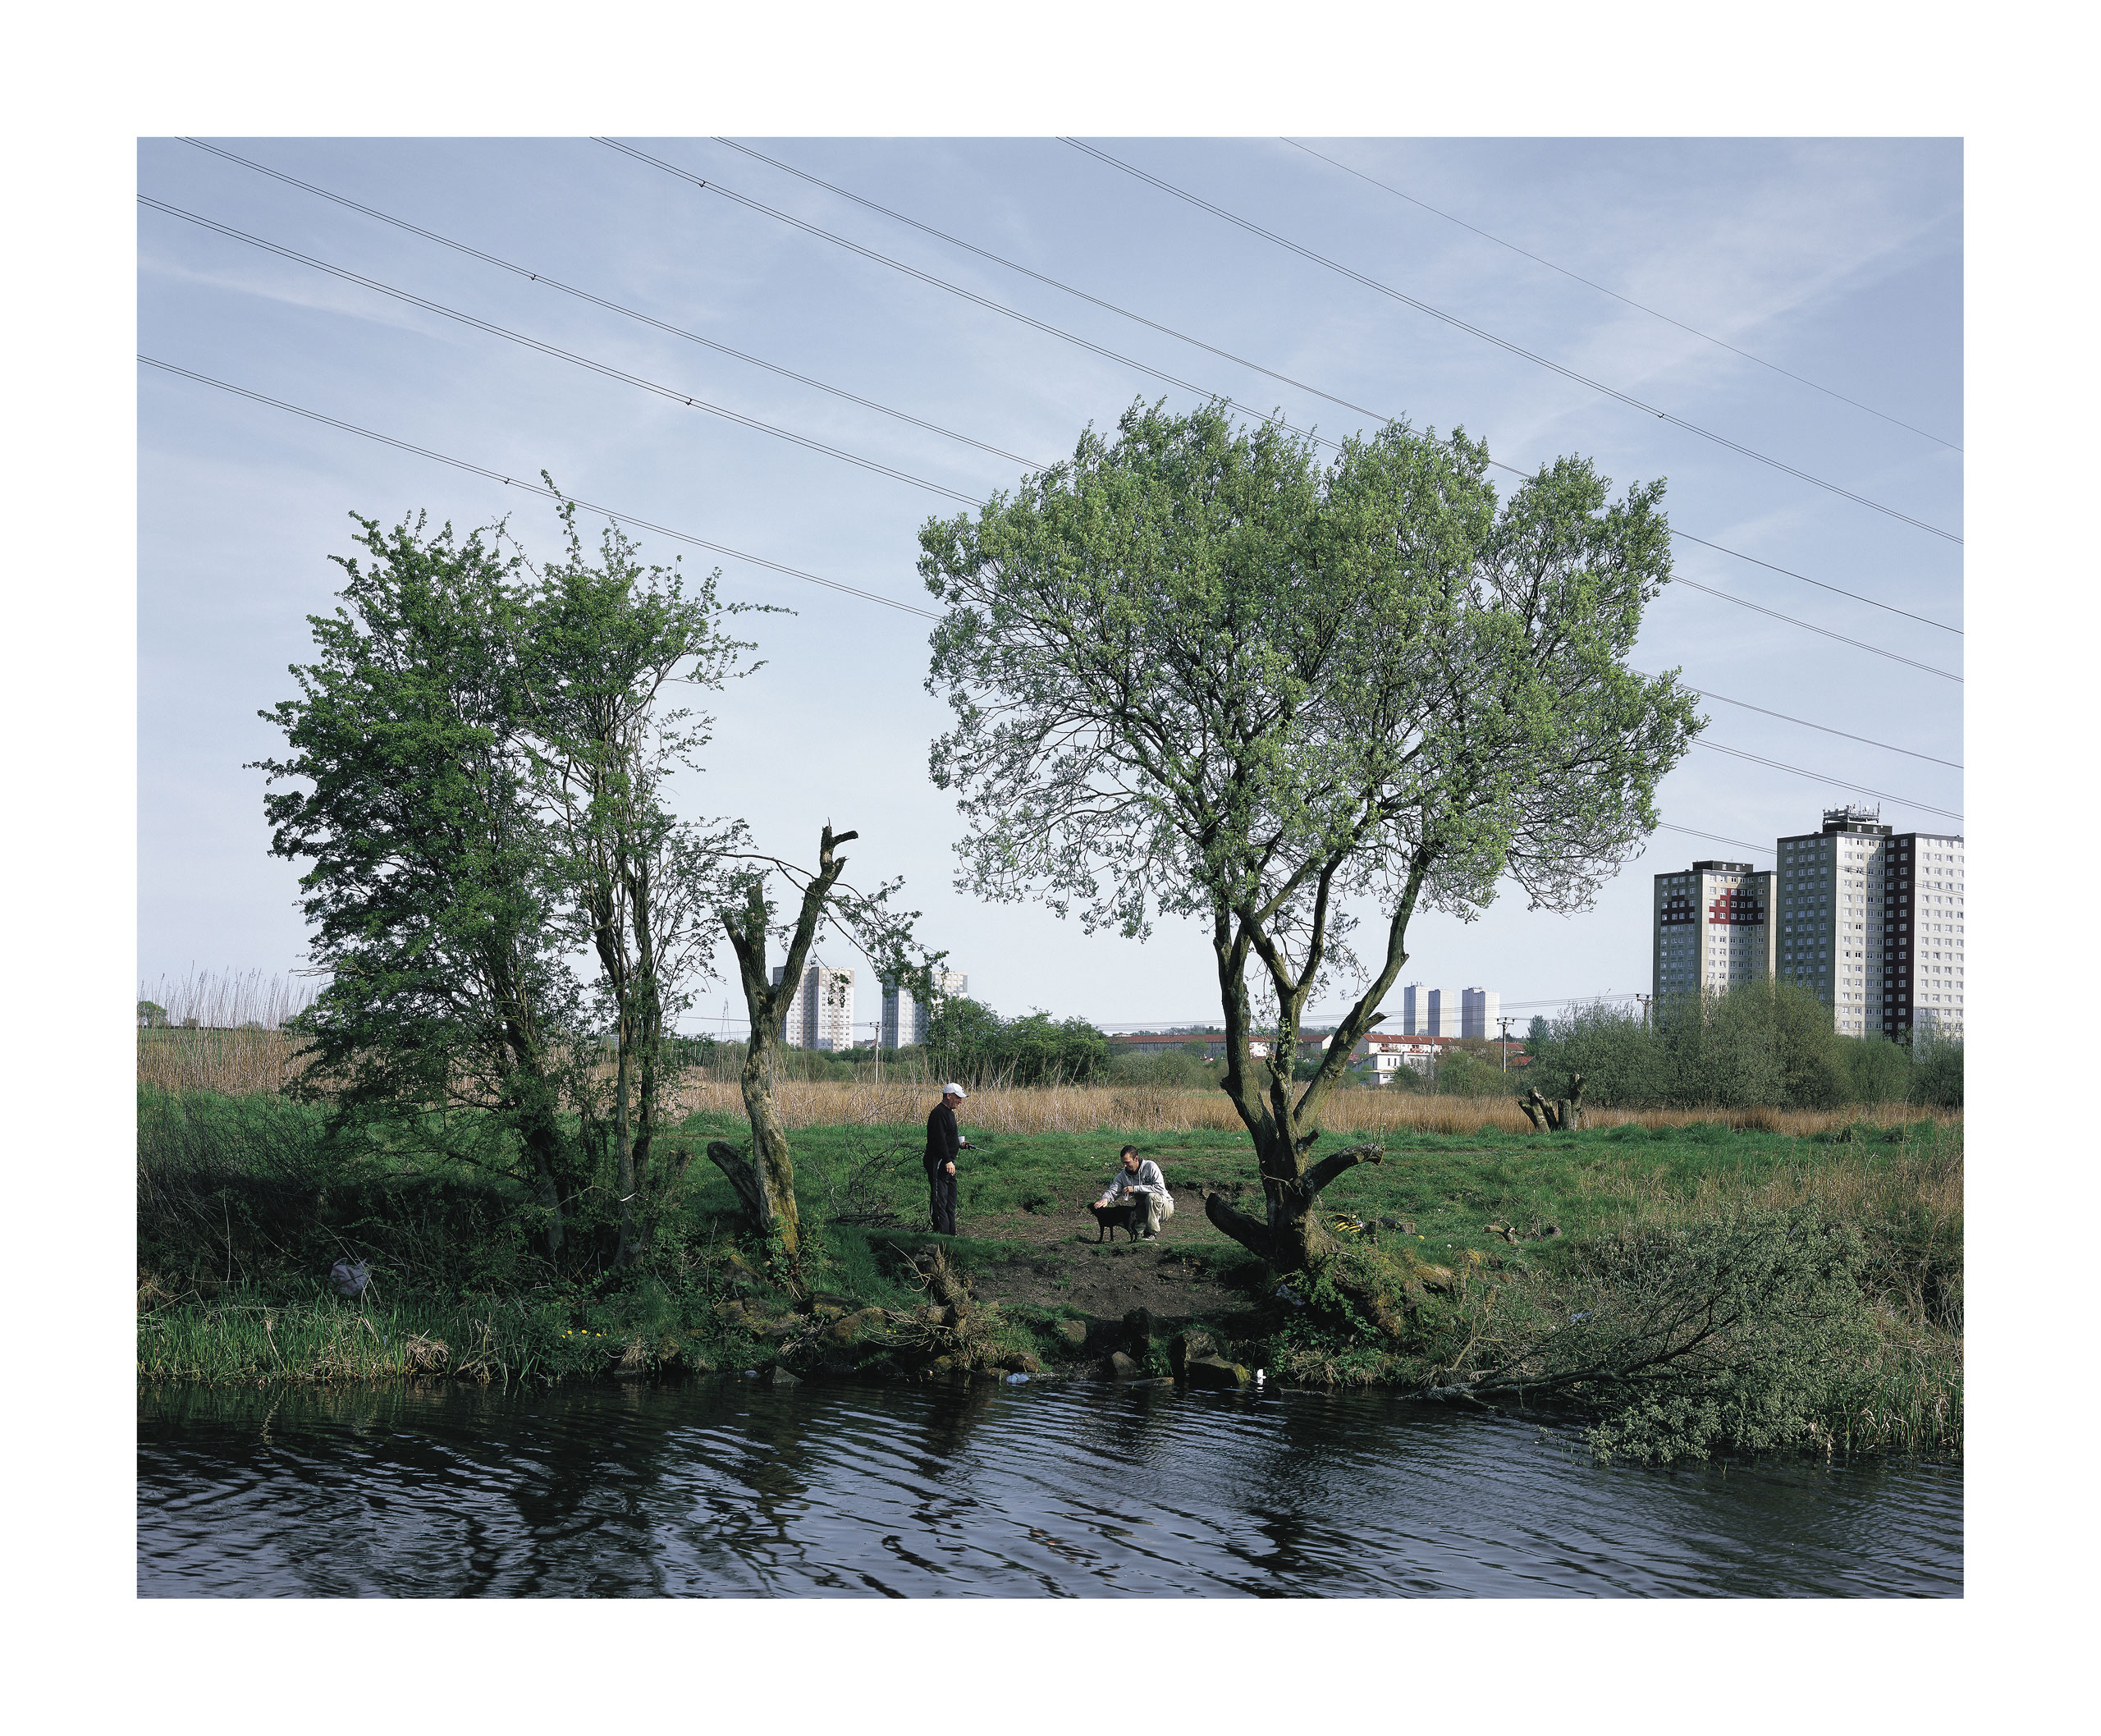 Image of Bank, from the series 'Forth and Clyde'  by Martin Hunter